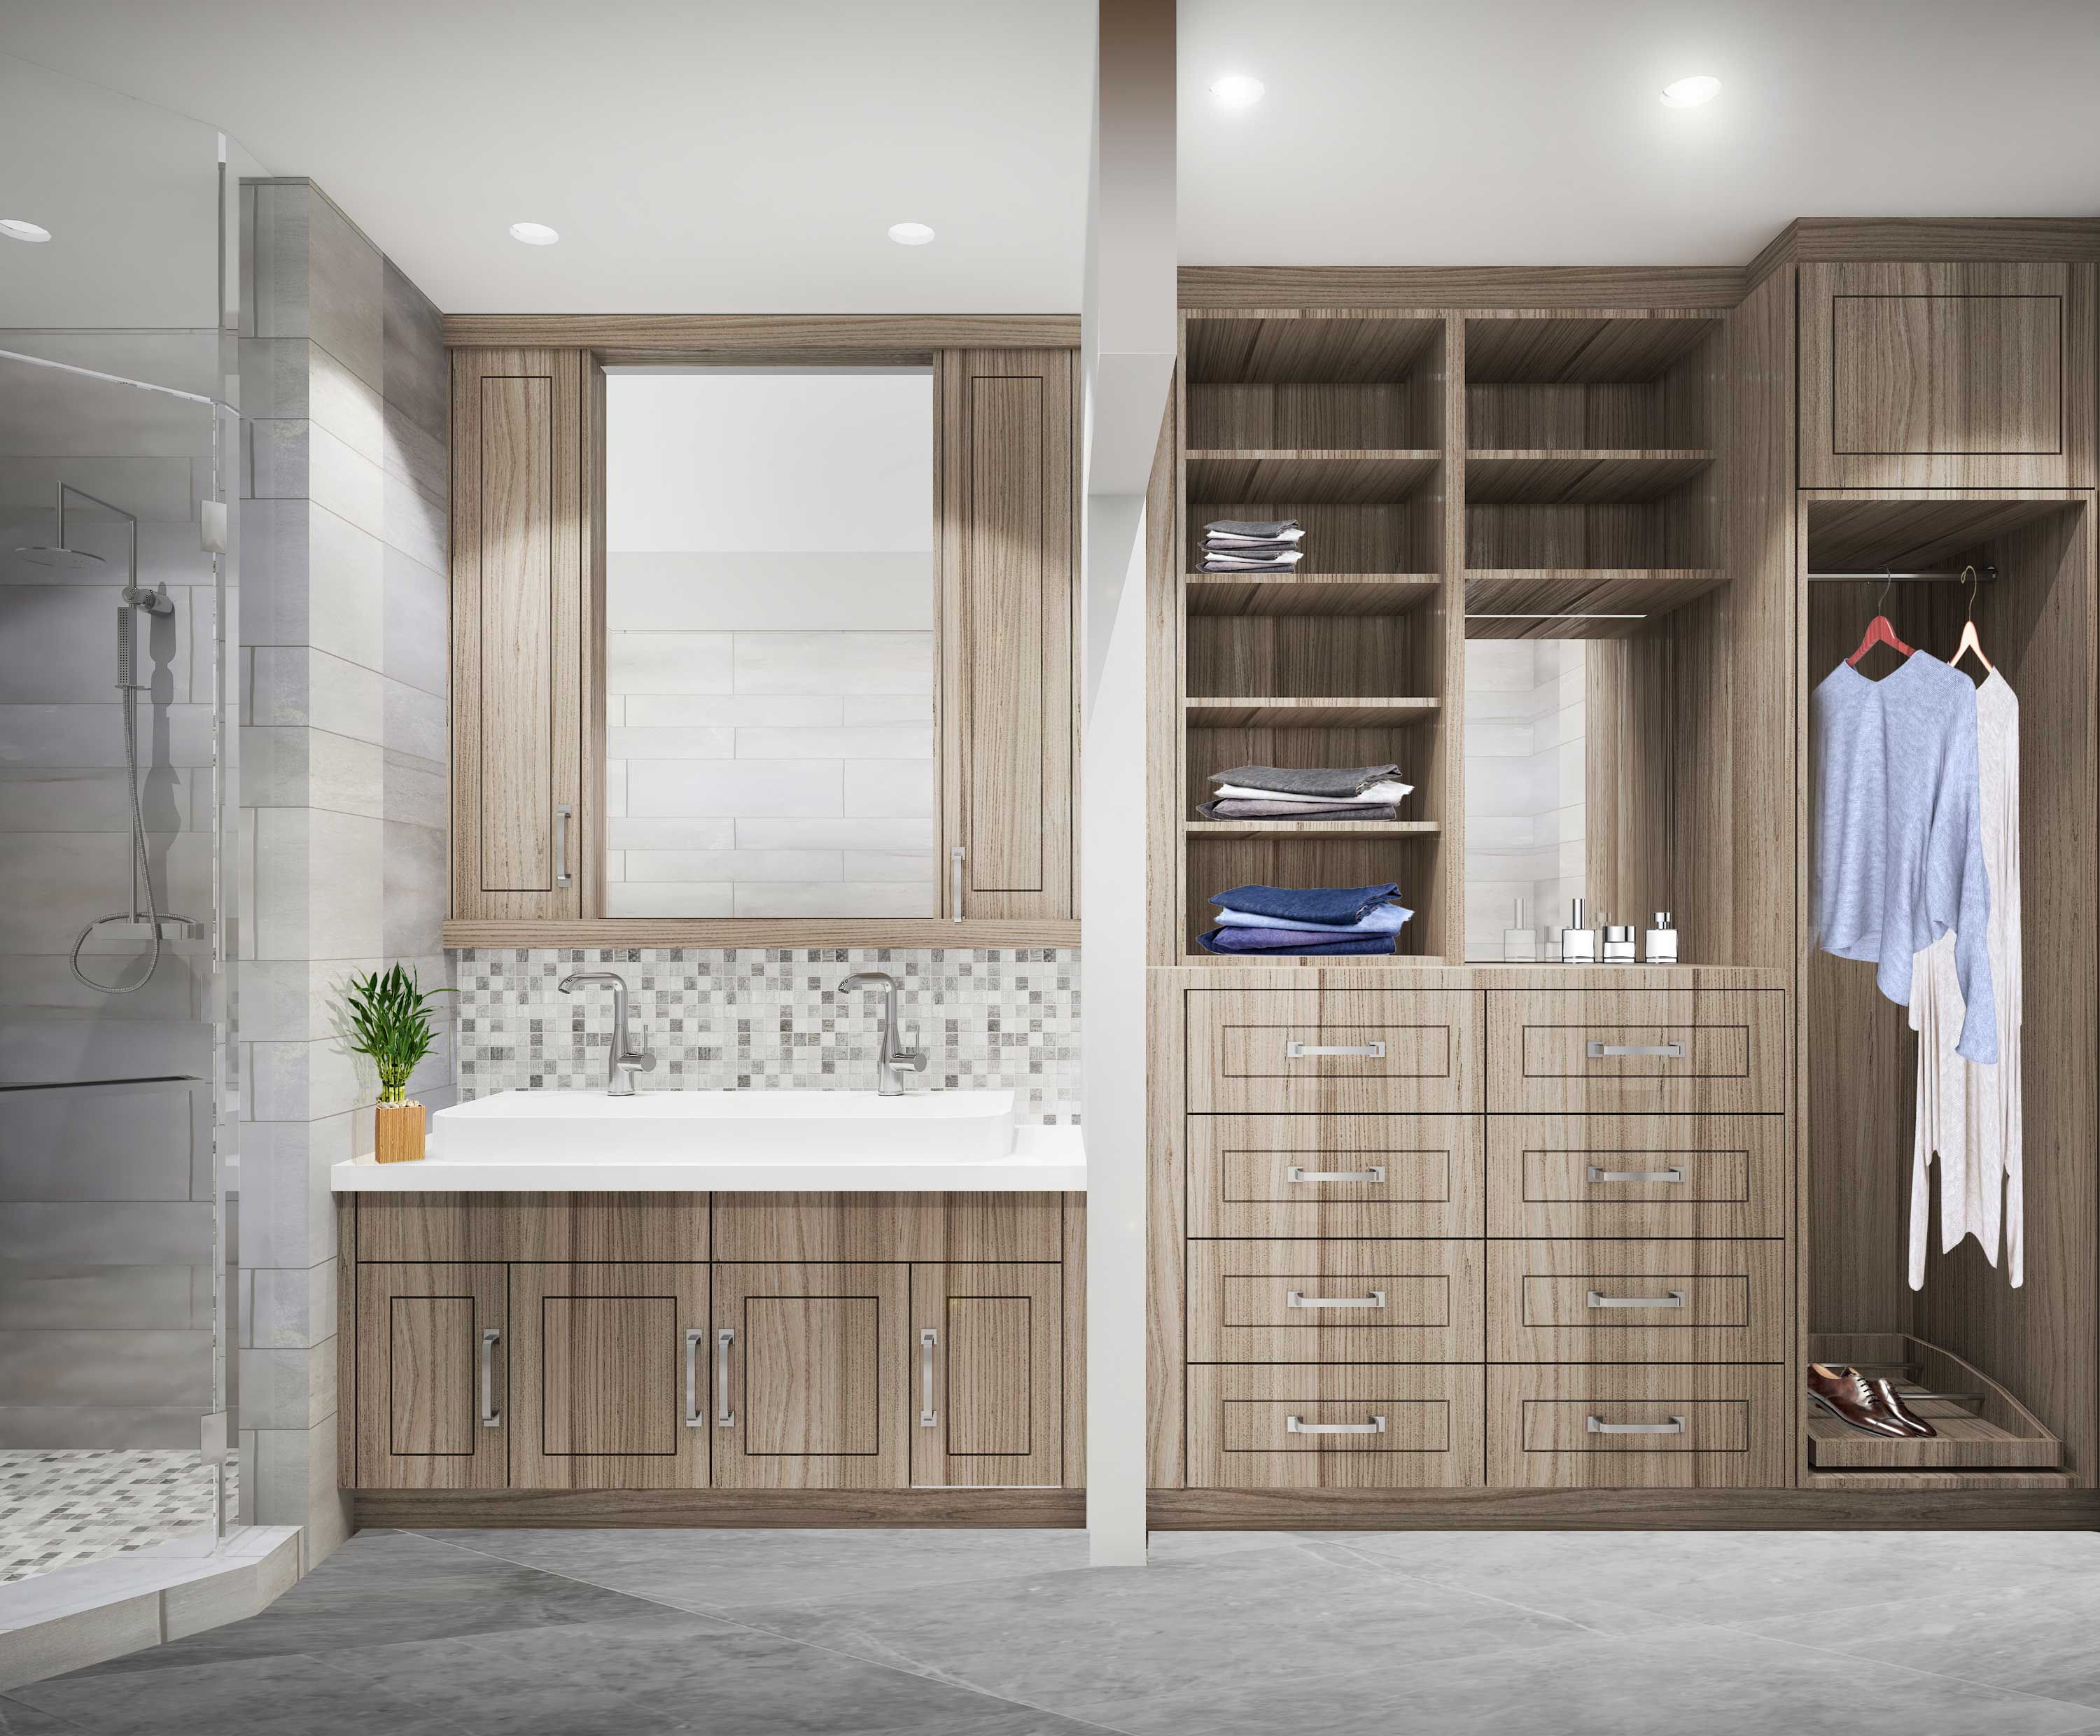 WEB_Master-bathroom-&closet-cross-section